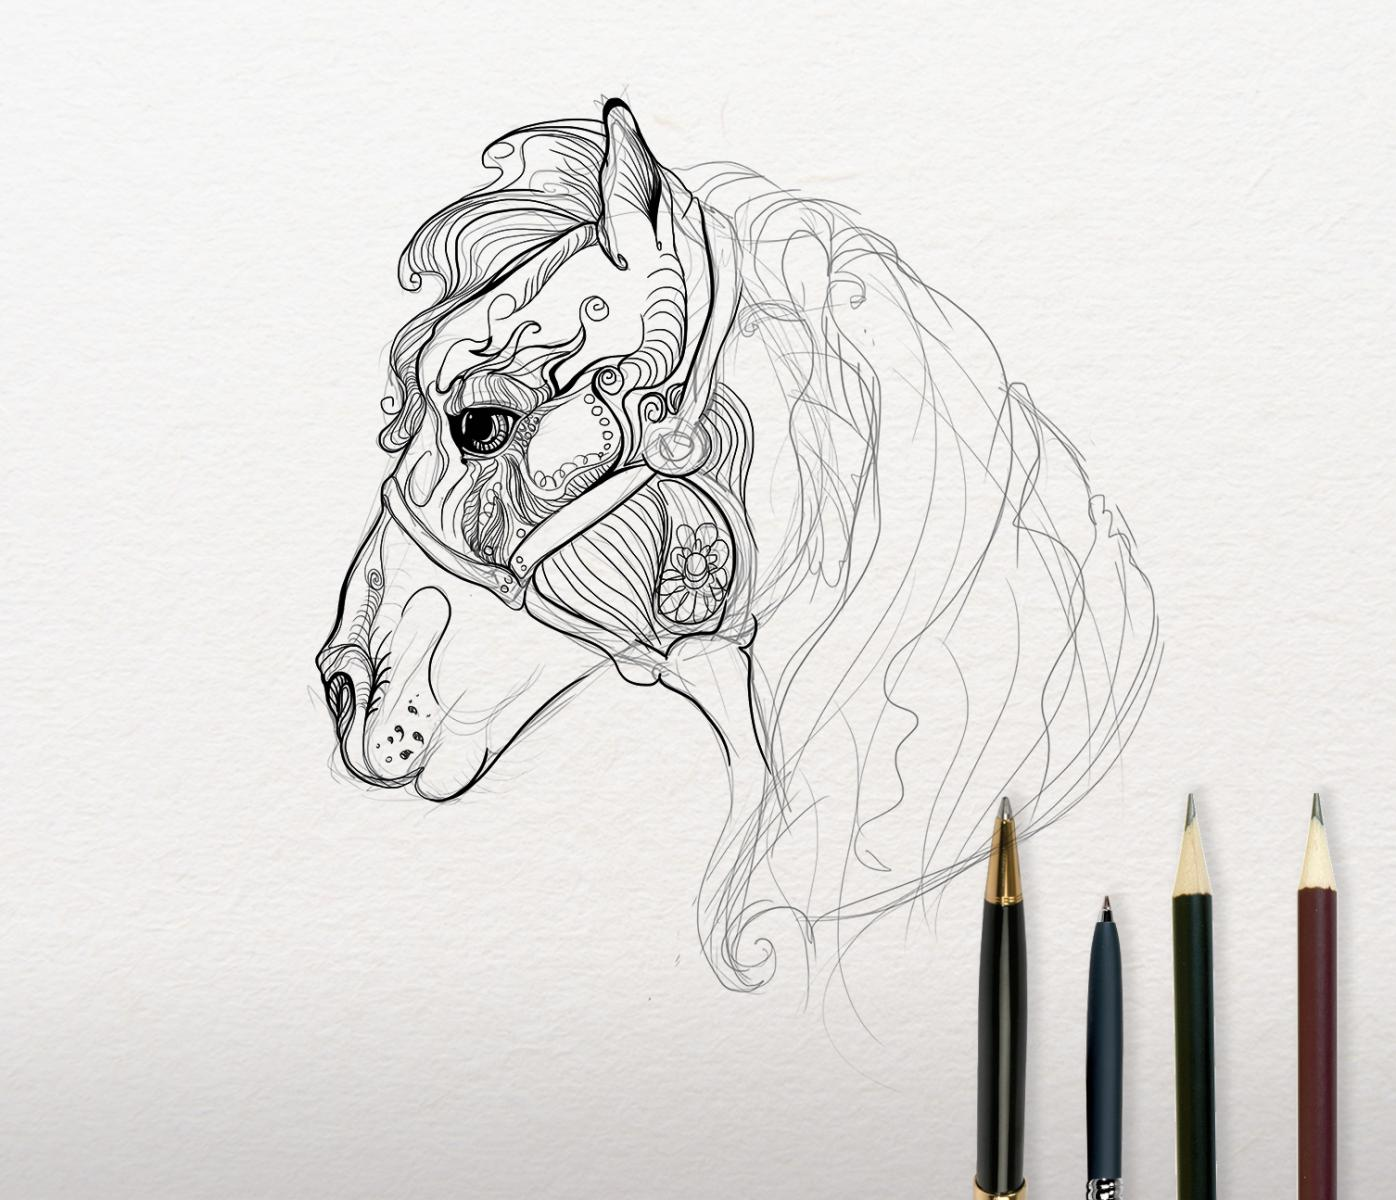 Mosaic horse embroidery sketch